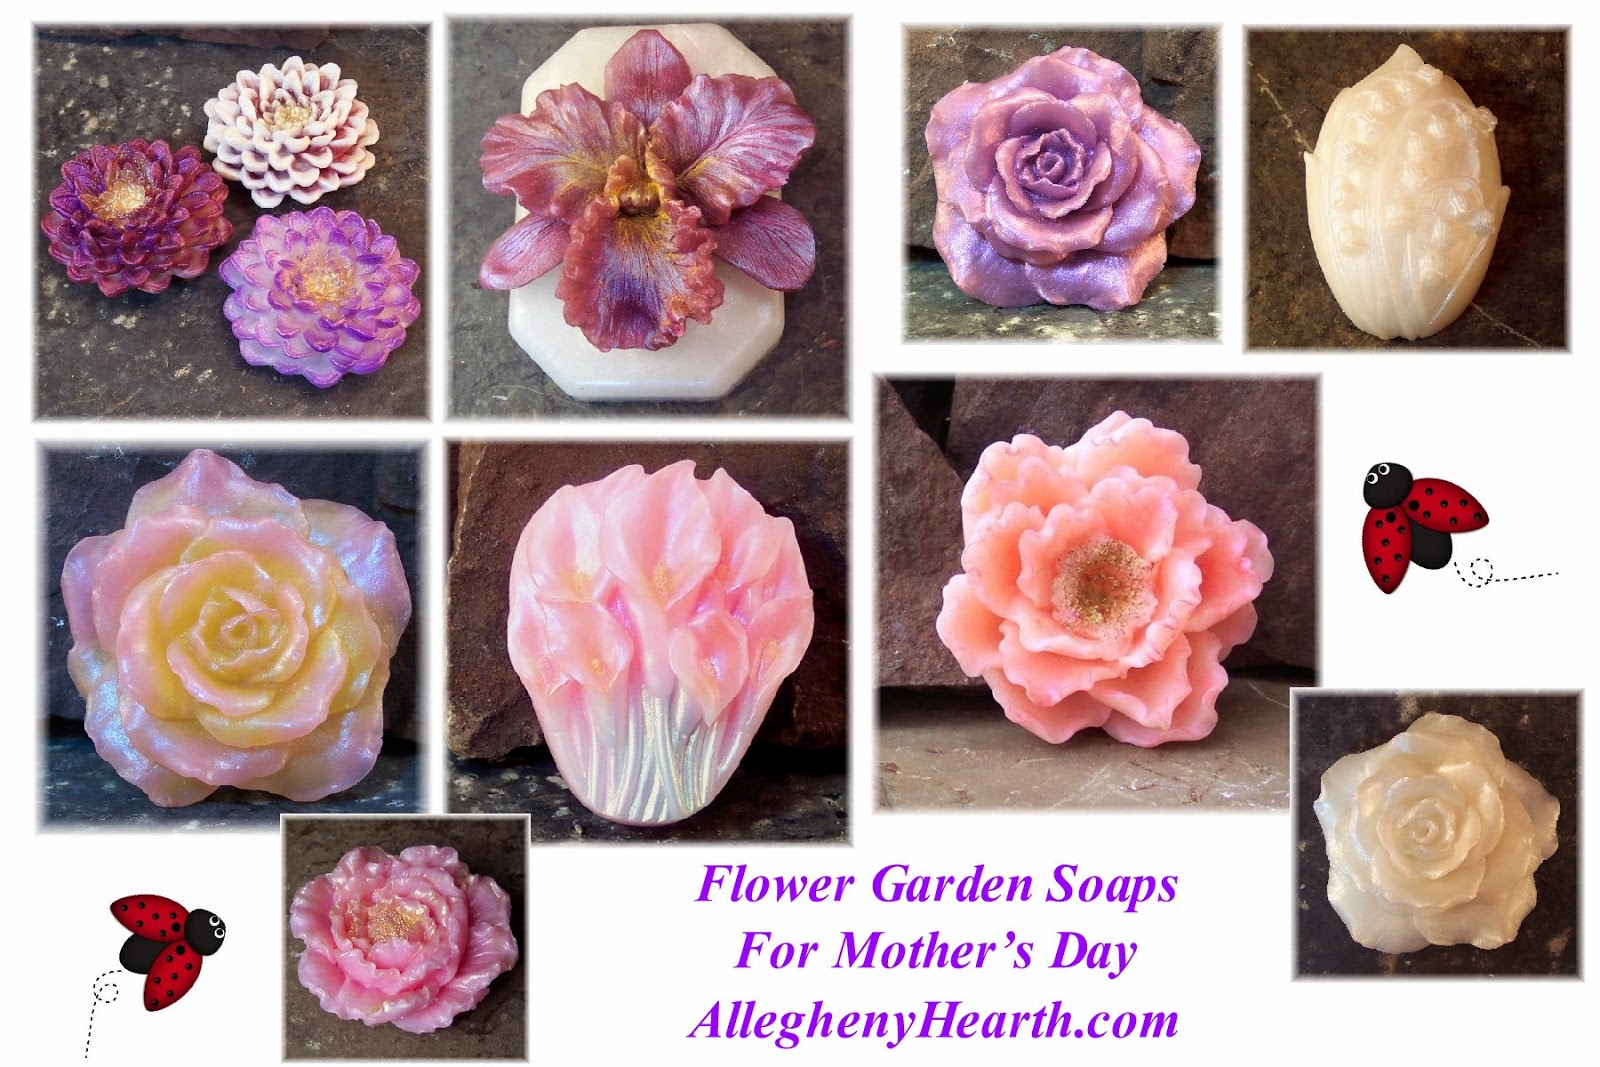 http://bonniebartley.wix.com/soapsmith#!flower-garden-soaps/c1ftt